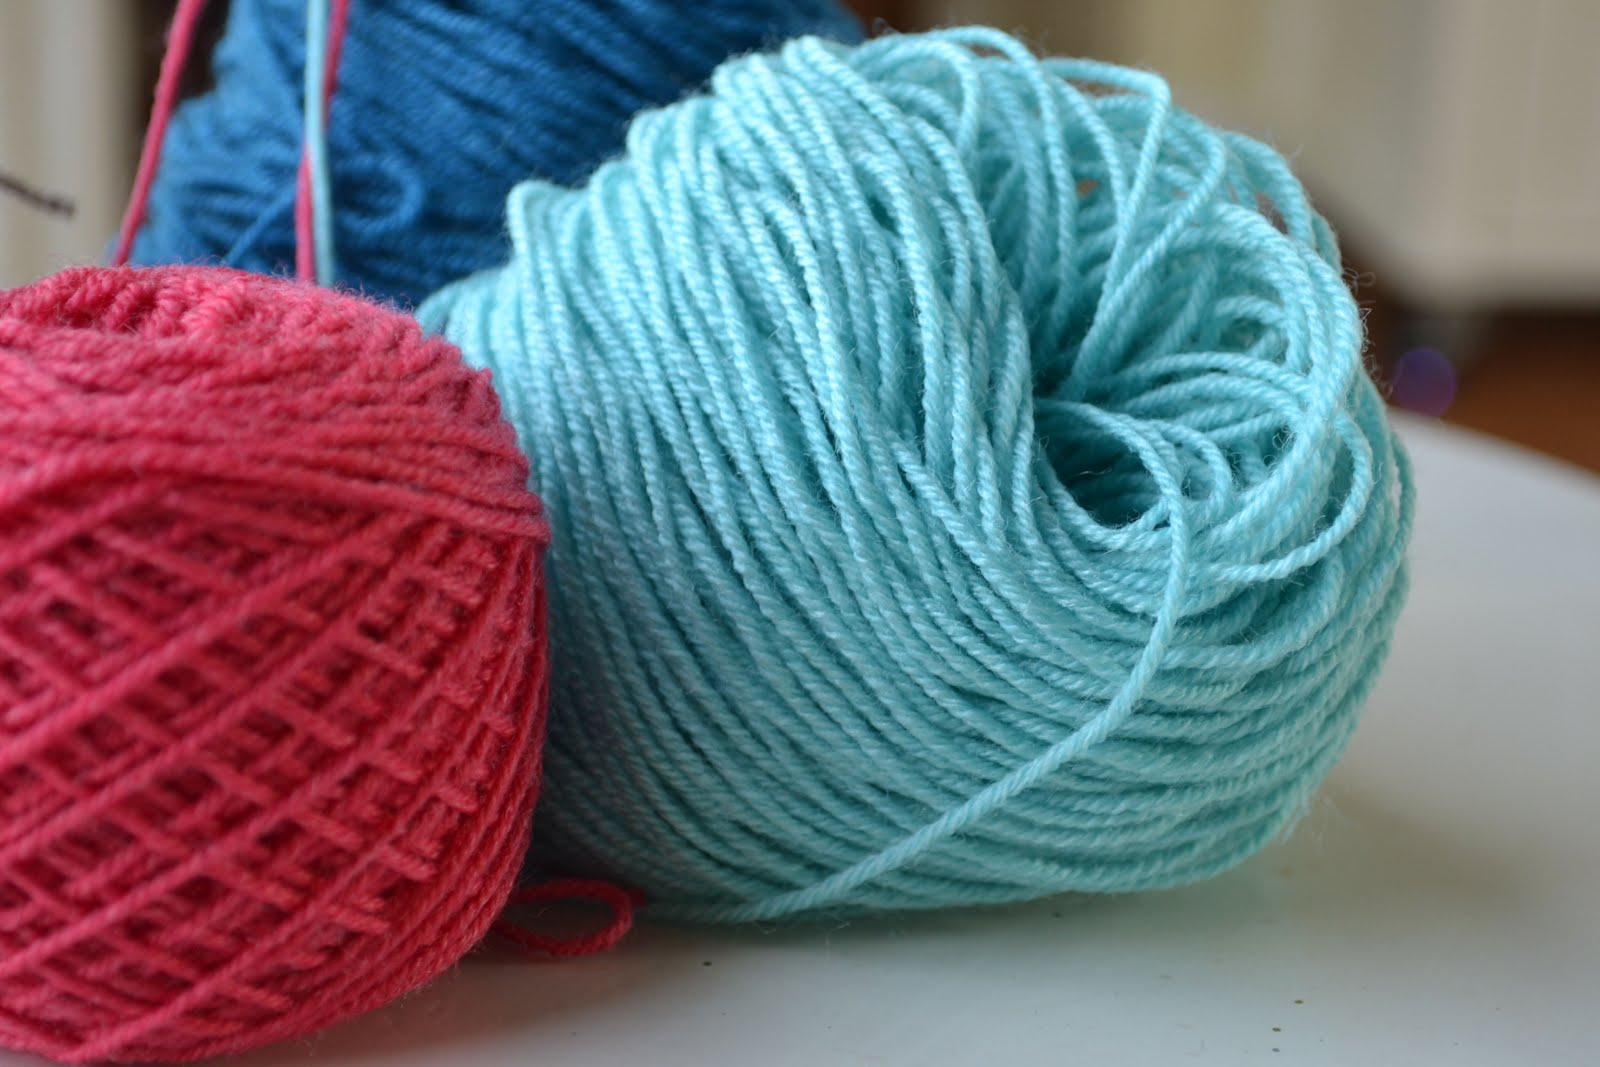 Crocheting Yarn : Crochet in Color: Spud & Chloe Yarn Review